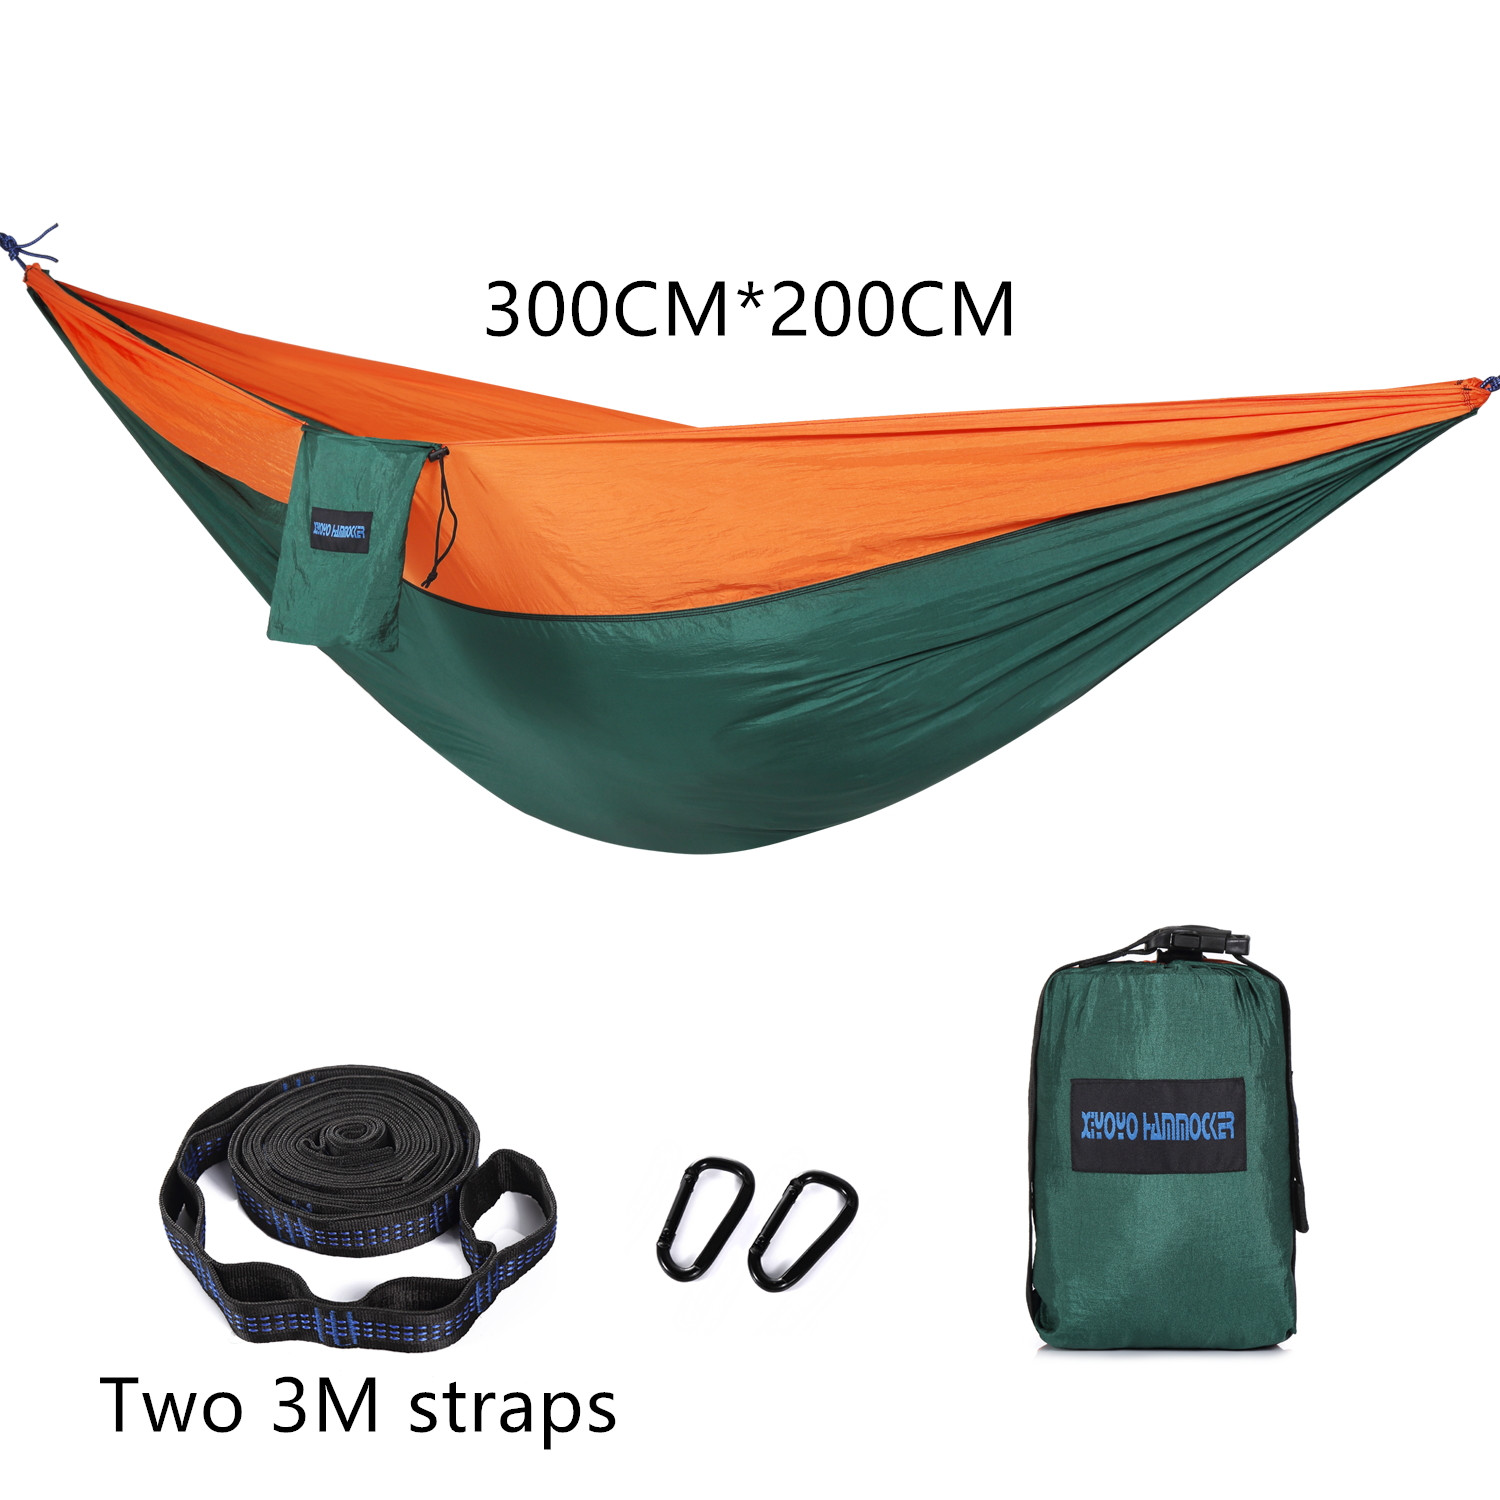 Double Hammock Adult Outdoor Backpack Travel Survival Hunting Bed Straps 2 With 2 Carabiners